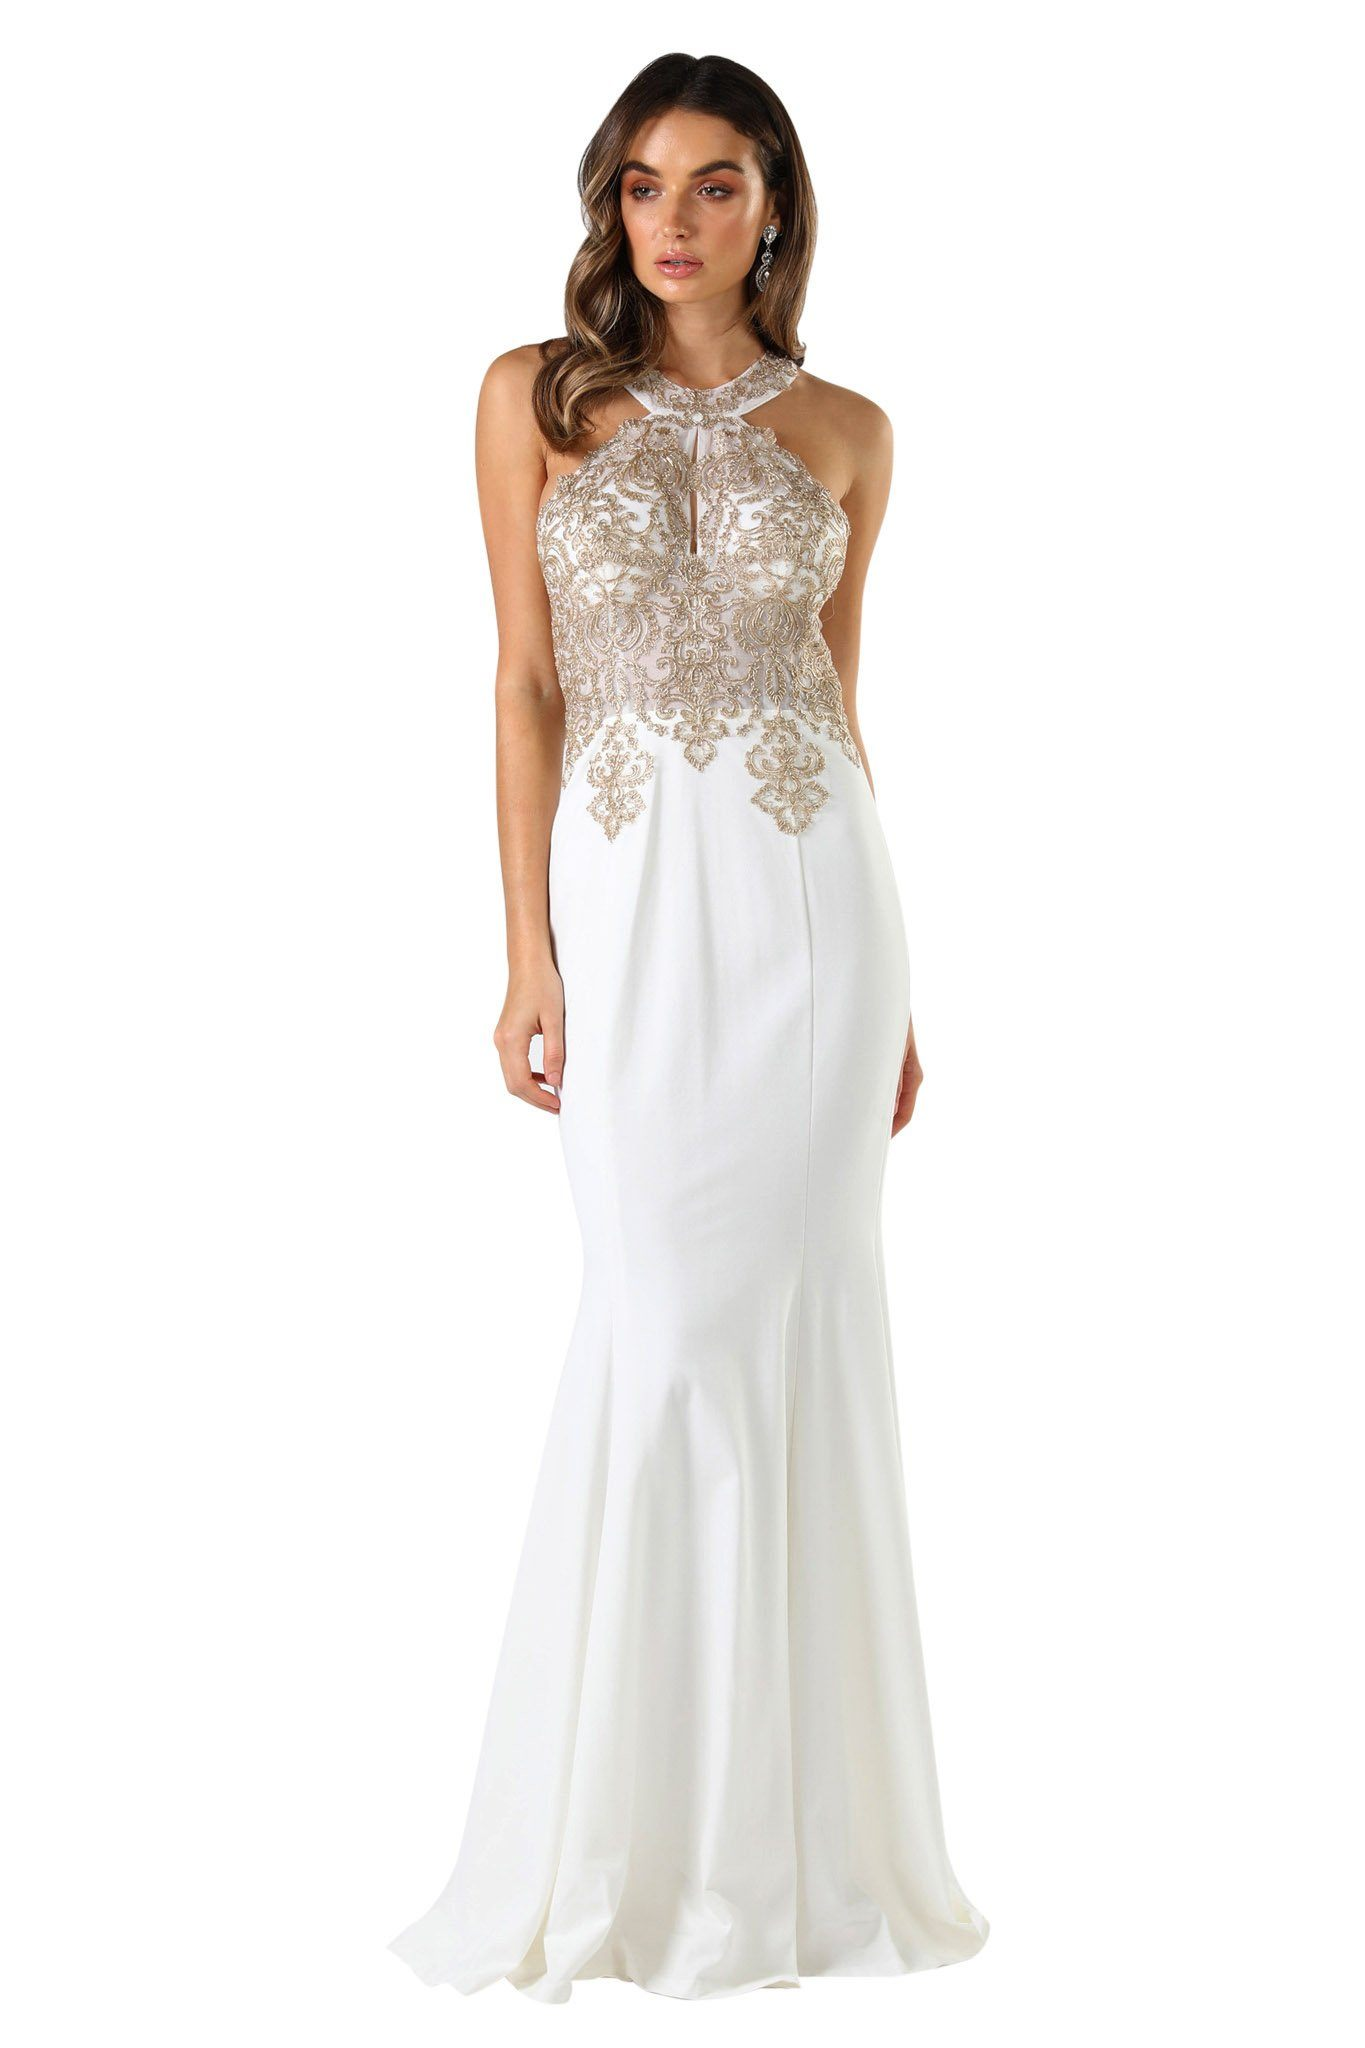 White sleeveless long gown with gold embroidery details, racer back design, slight mermaid silhouette